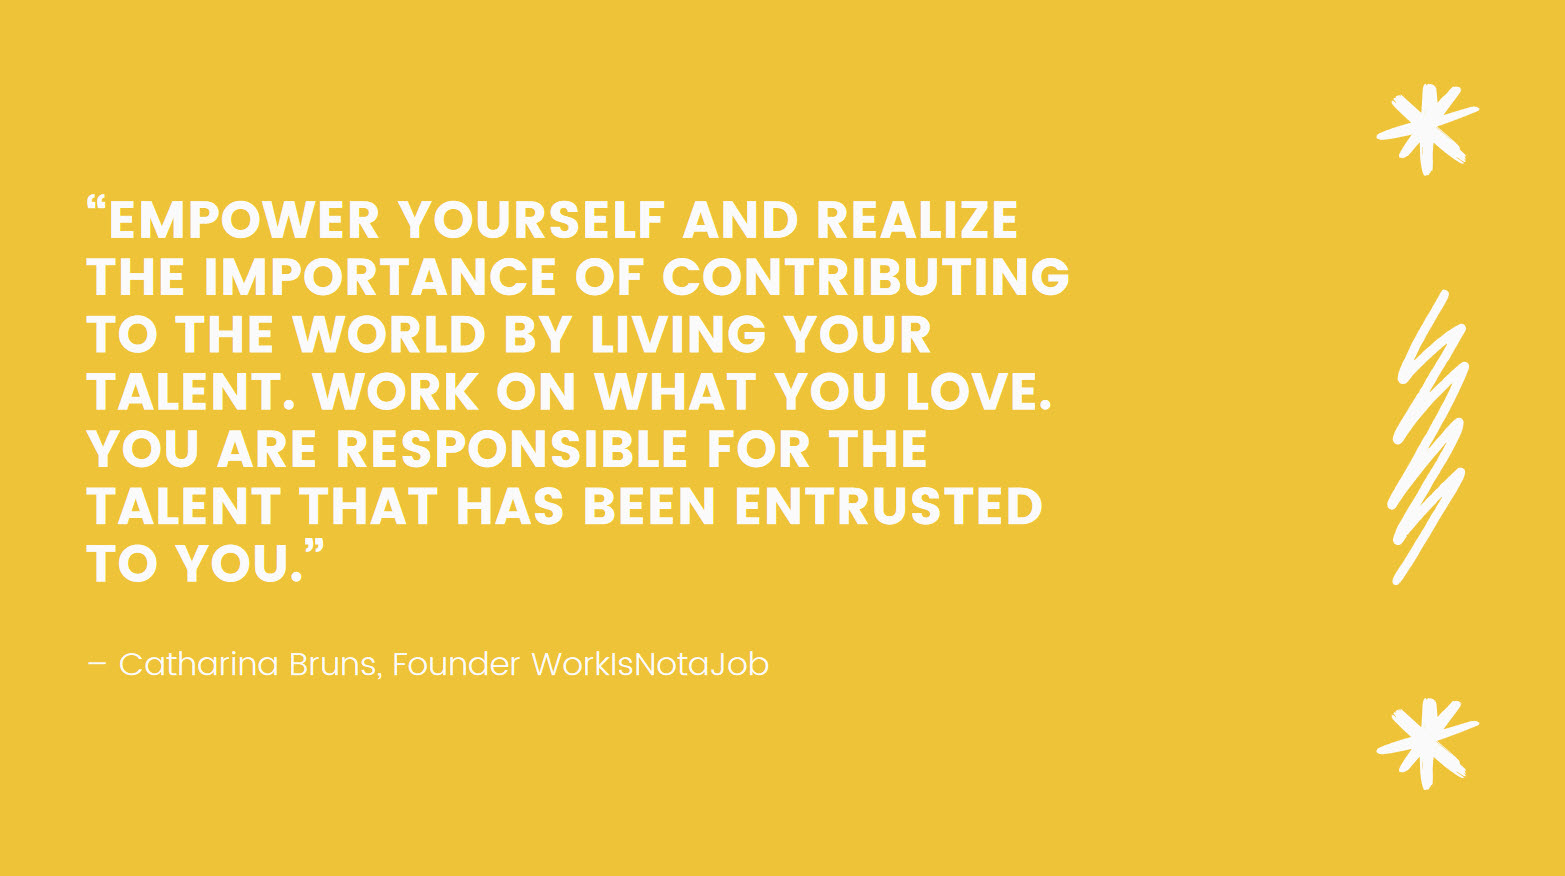 """Quote: """"Empower yourself and realize the importance of contributing to the world by living your talent. Work on what you love. You are responsible for the talent that has been entrusted to you."""" - Catharina Bruns"""